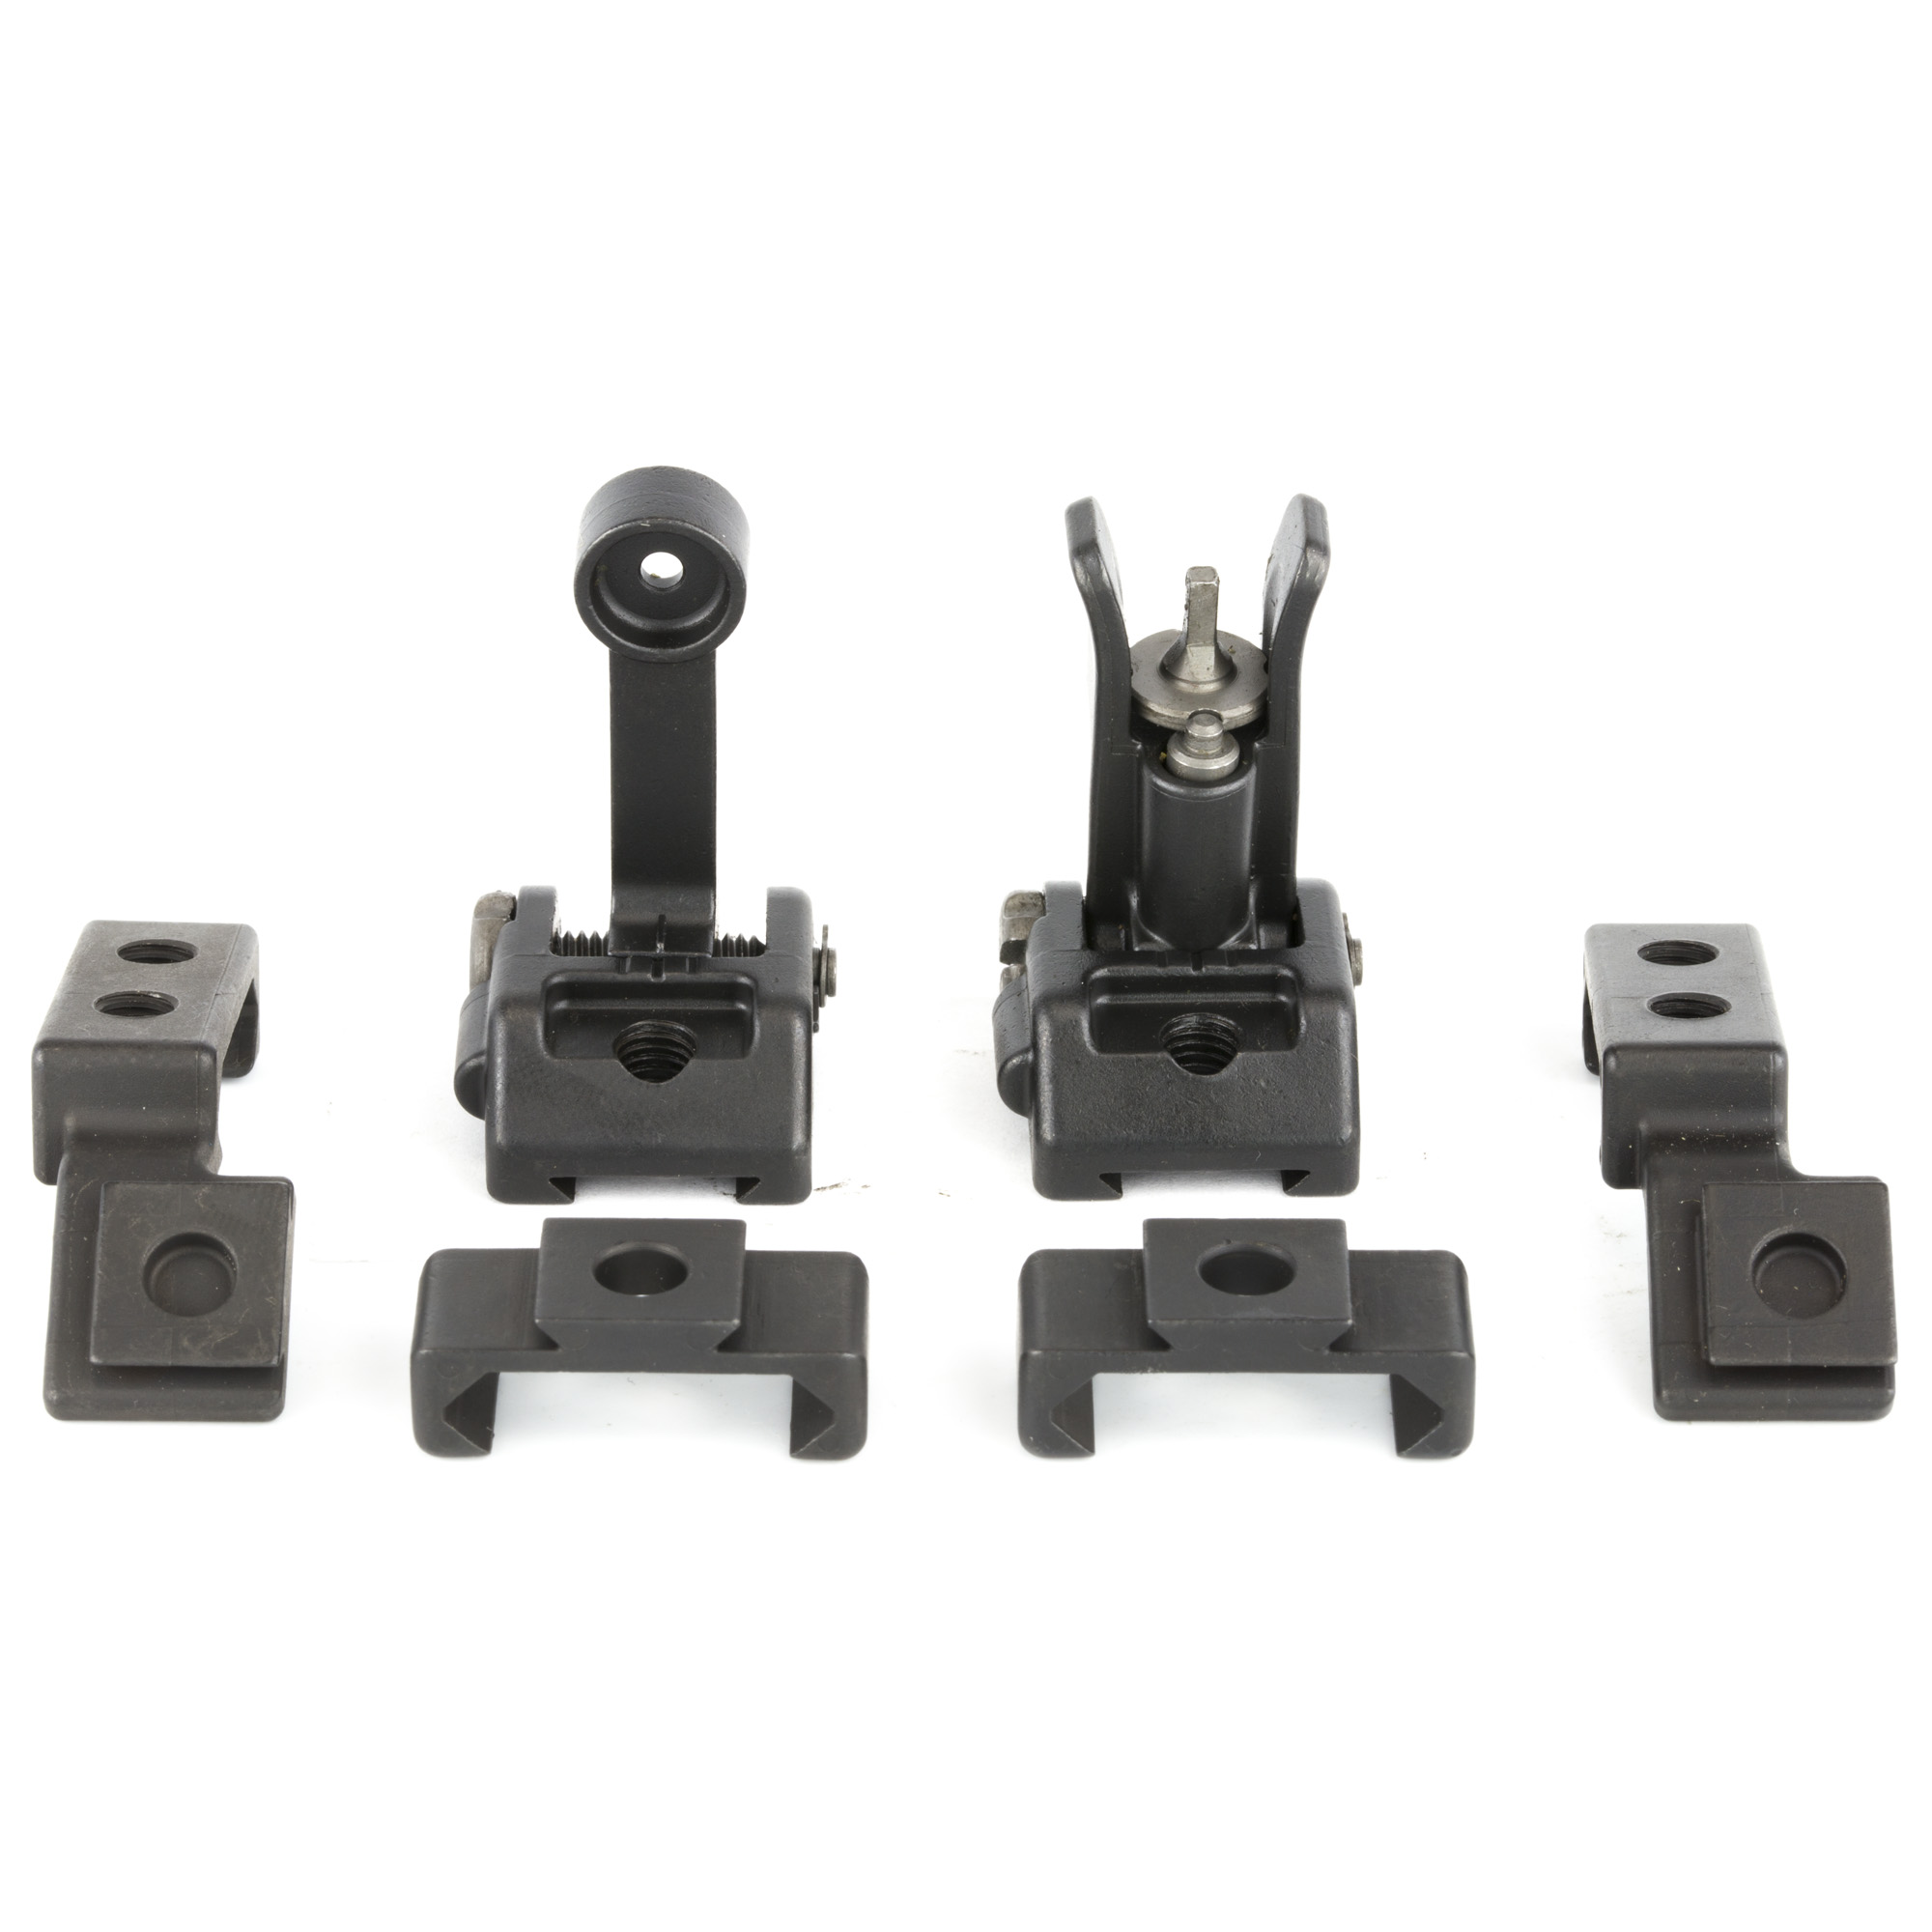 """M2 Sights Deploy Kit-Griffin Armament is proud to introduce affordable Micro Modular Sights (M2) compatible with Picatinny rail systems. Griffin M2 sights offer an industry first"""" patent pending"""" modular base plate system. Constructed from QPQ Treated 17-4 and ordnance grade steel"""" Griffin M2 Sights were designed to be the correct product for every backup sight application. A shooter can use these durable"""" low profile sights in a 12 o'clock mounted application while having the flexibility to reconfigure them to ambidextrous 45 degree angle sights using the alternate and available angle plates. This flexibility ensures these sights can be used by anyone and will never end up in a box of undesirable legacy kit. The full M2 deployment kit includes the front and rear sight assemblies as well as both vertical and angled bases for a complete modular system. However"""" sights and bases are available separately for users who wish to buy parts as needed. The front A2 sight provides elevation adjustment while ensuring maximum aftermarket support for your favorite post"""" be it tritium"""" fiber optic"""" match grade"""" or otherwise. An extremely low profile"""" snag resistant"""" slotted rear windage screw"""" affords easy but more importantly secure adjustability. Robust spring tension of both front and rear flip up assemblies ensures accurate repeatability every time the sight towers are actuated. Never before has a product in this category offer this degree of flexibility. Griffin M2 Sights have a minimal foot print"""" and are among the smallest backup sights on the market. For a mere 2 and half ounces your rifle can be equipped with a durable iron sight system"""" to provide aiming capability in rain"""" snow"""" or fog"""" on or off axis without dependence on batteries or glass."""